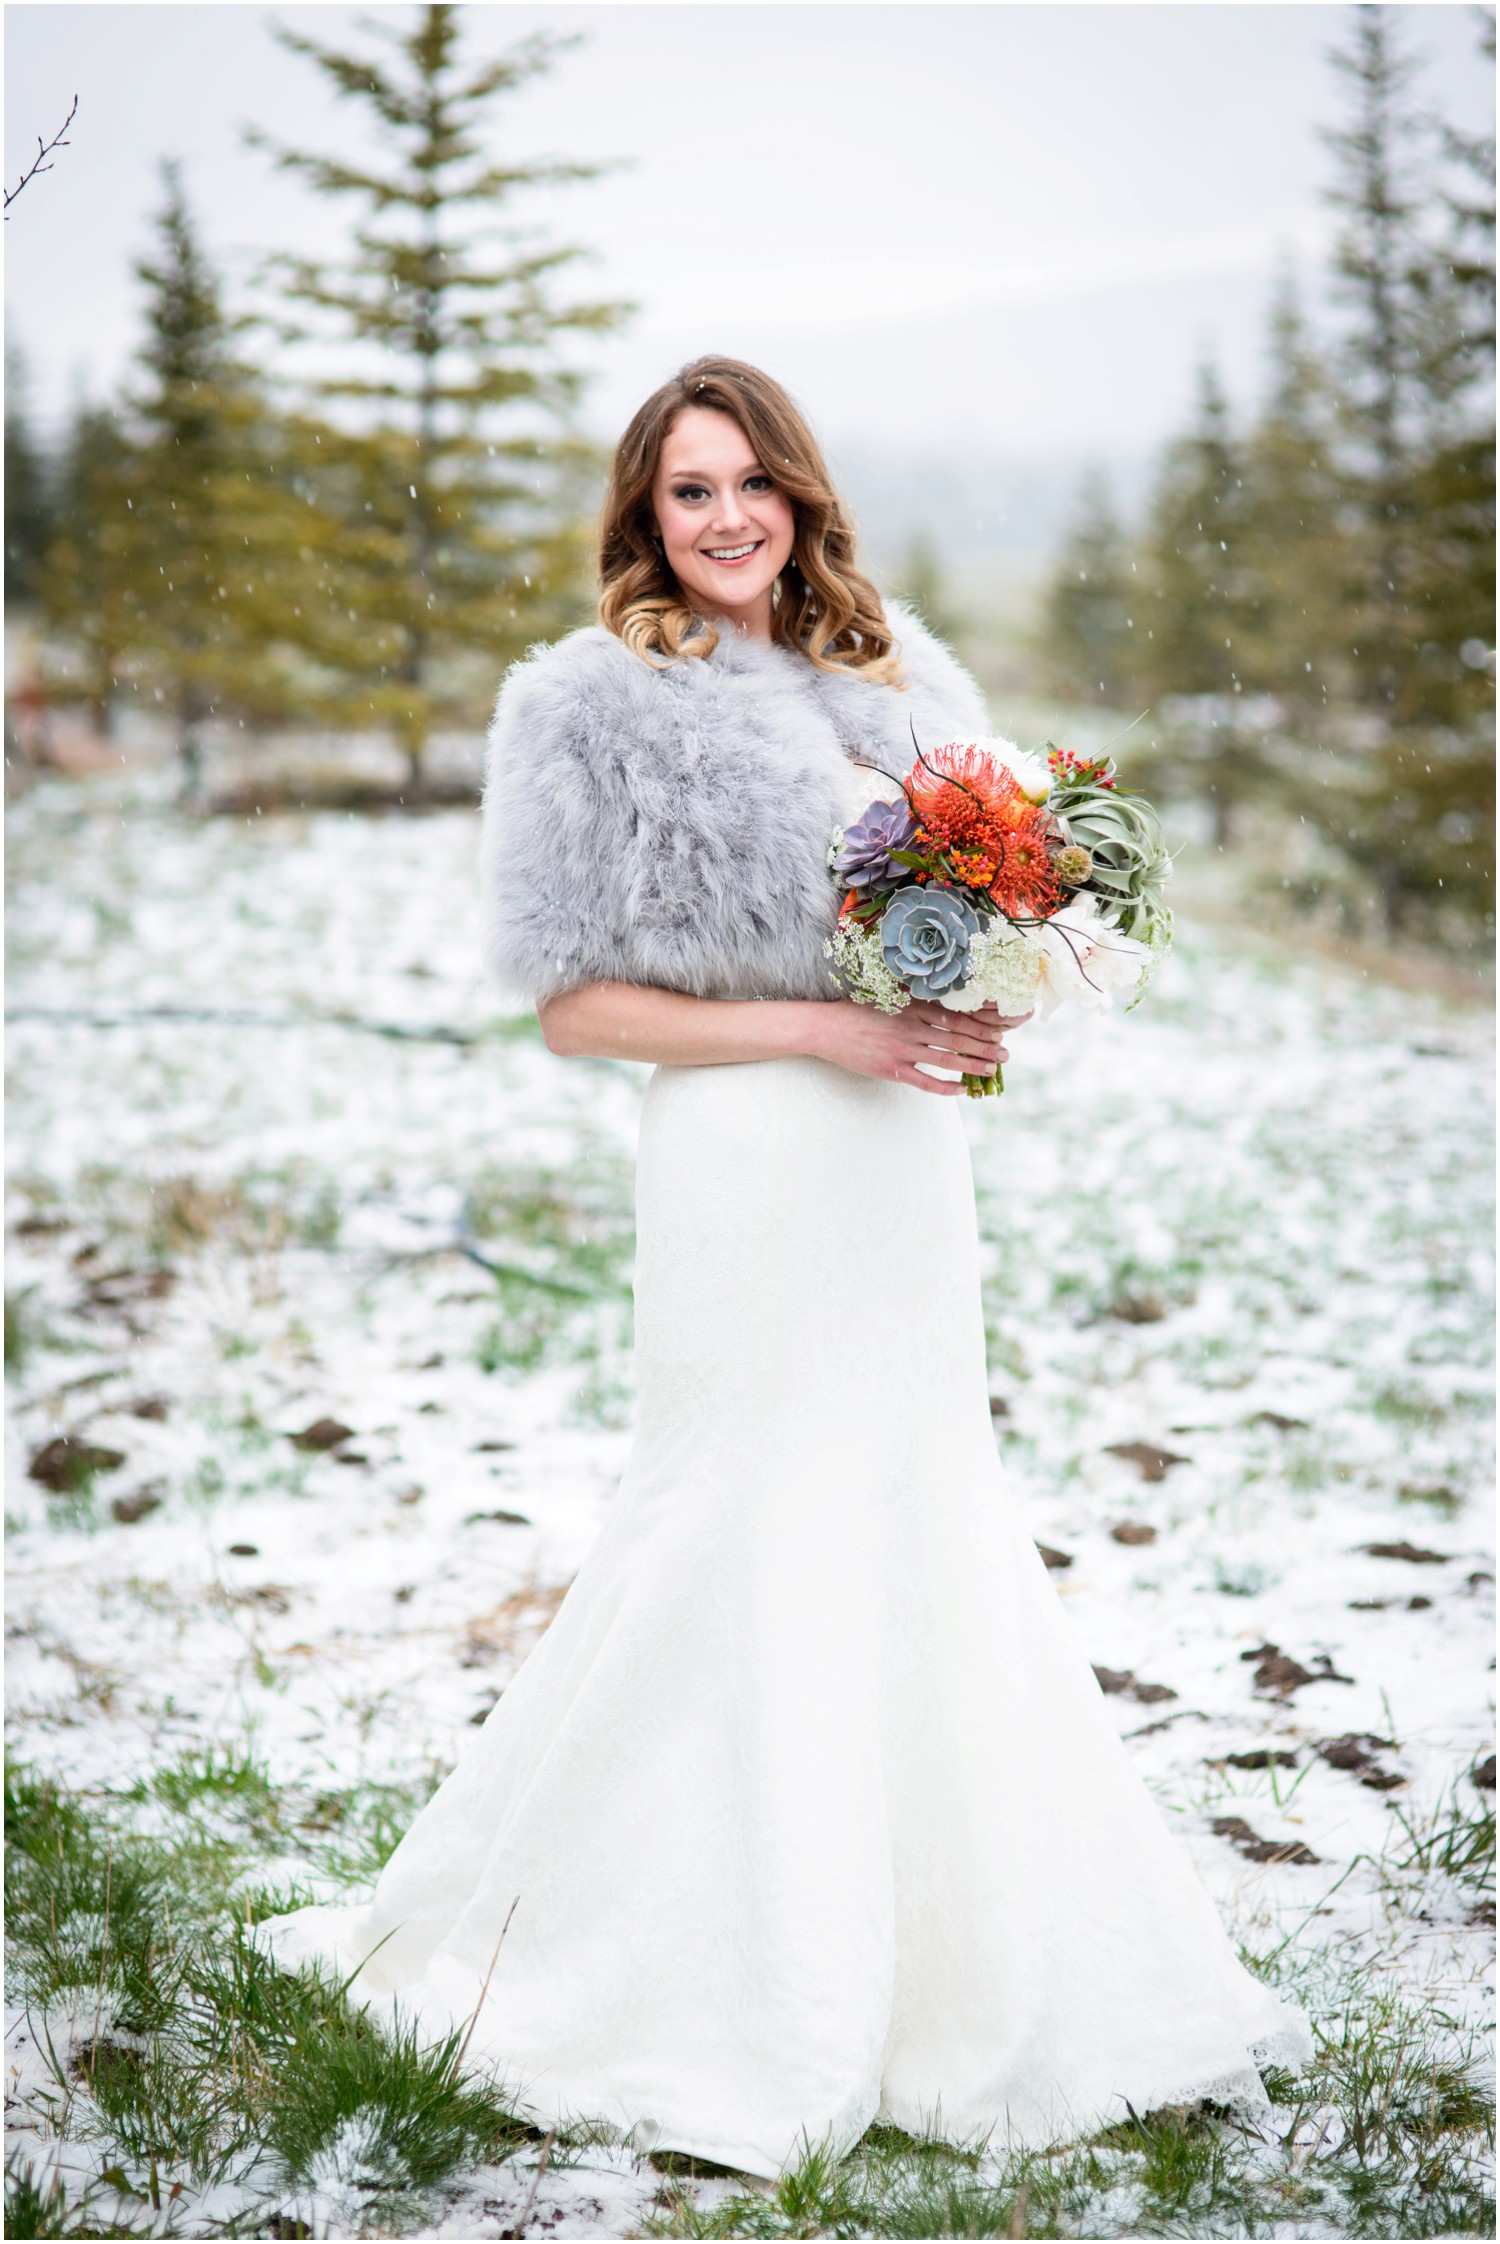 Devils-thumb-ranch-colorado-snowy-wedding-_0018.jpg